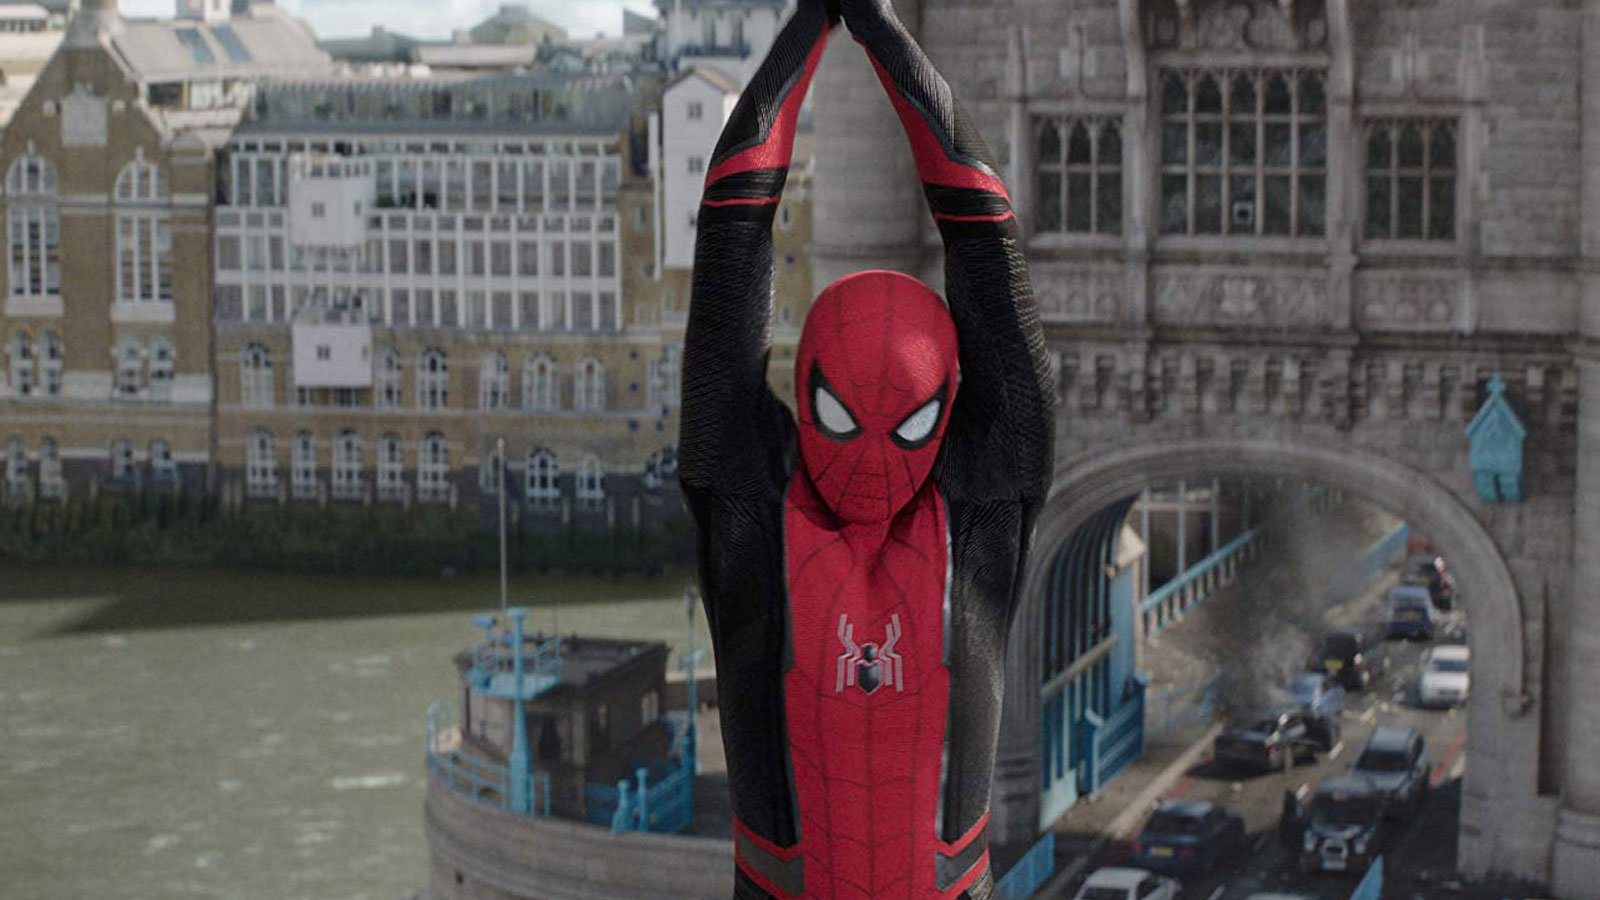 Spider-Man: Far From Home Review - OC Movie Reviews - Movie Reviews, Movie News, Documentary Reviews, Short Films, Short Film Reviews, Trailers, Movie Trailers, Interviews, film reviews, film news, hollywood, indie films, documentaries, TV shows